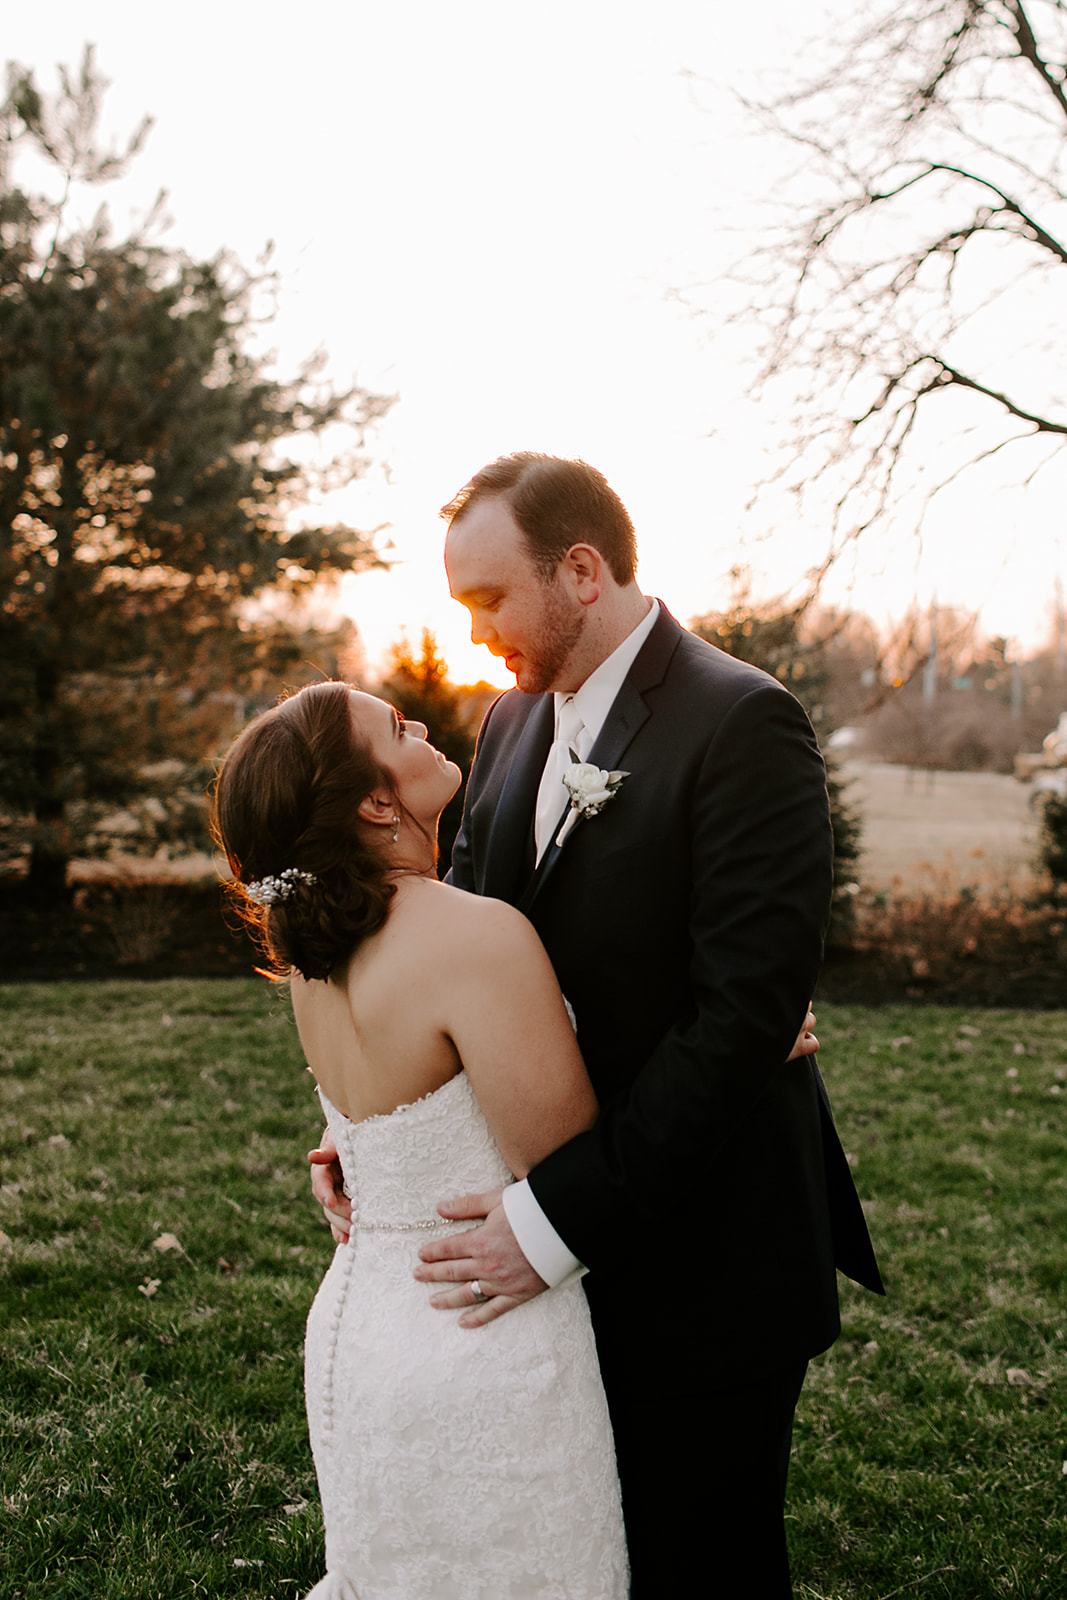 Lauren_and_Andrew_Mustard_Seed_Gardens_Noblesville_Indiana_by_Emily_Wehner_Photography-892.jpg